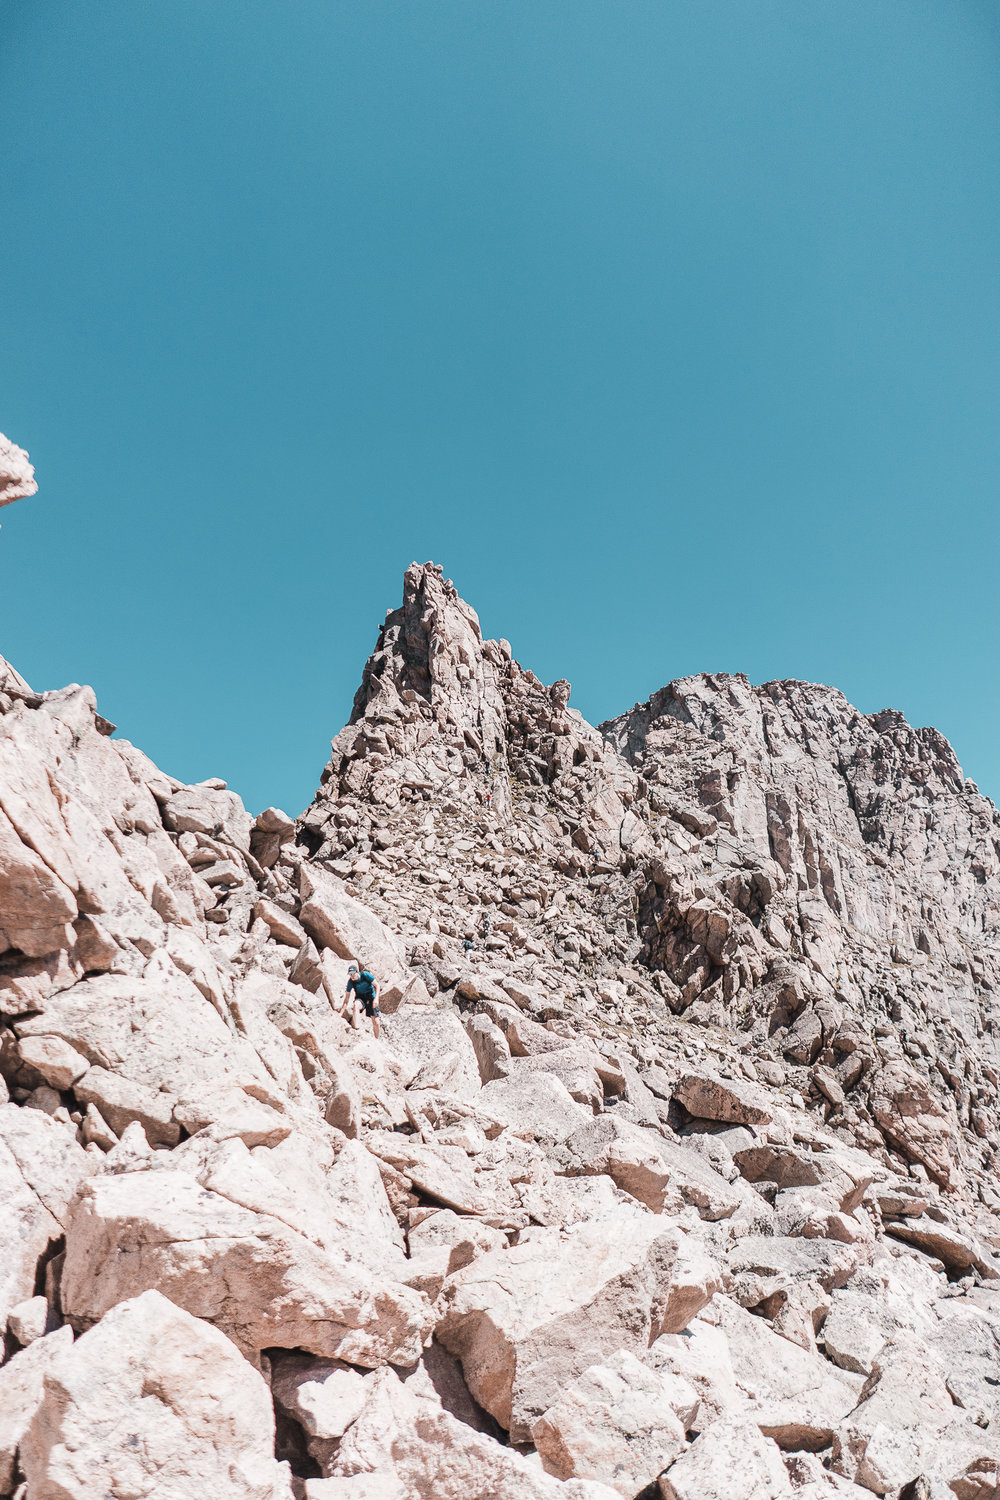 Third and Final Outcropping